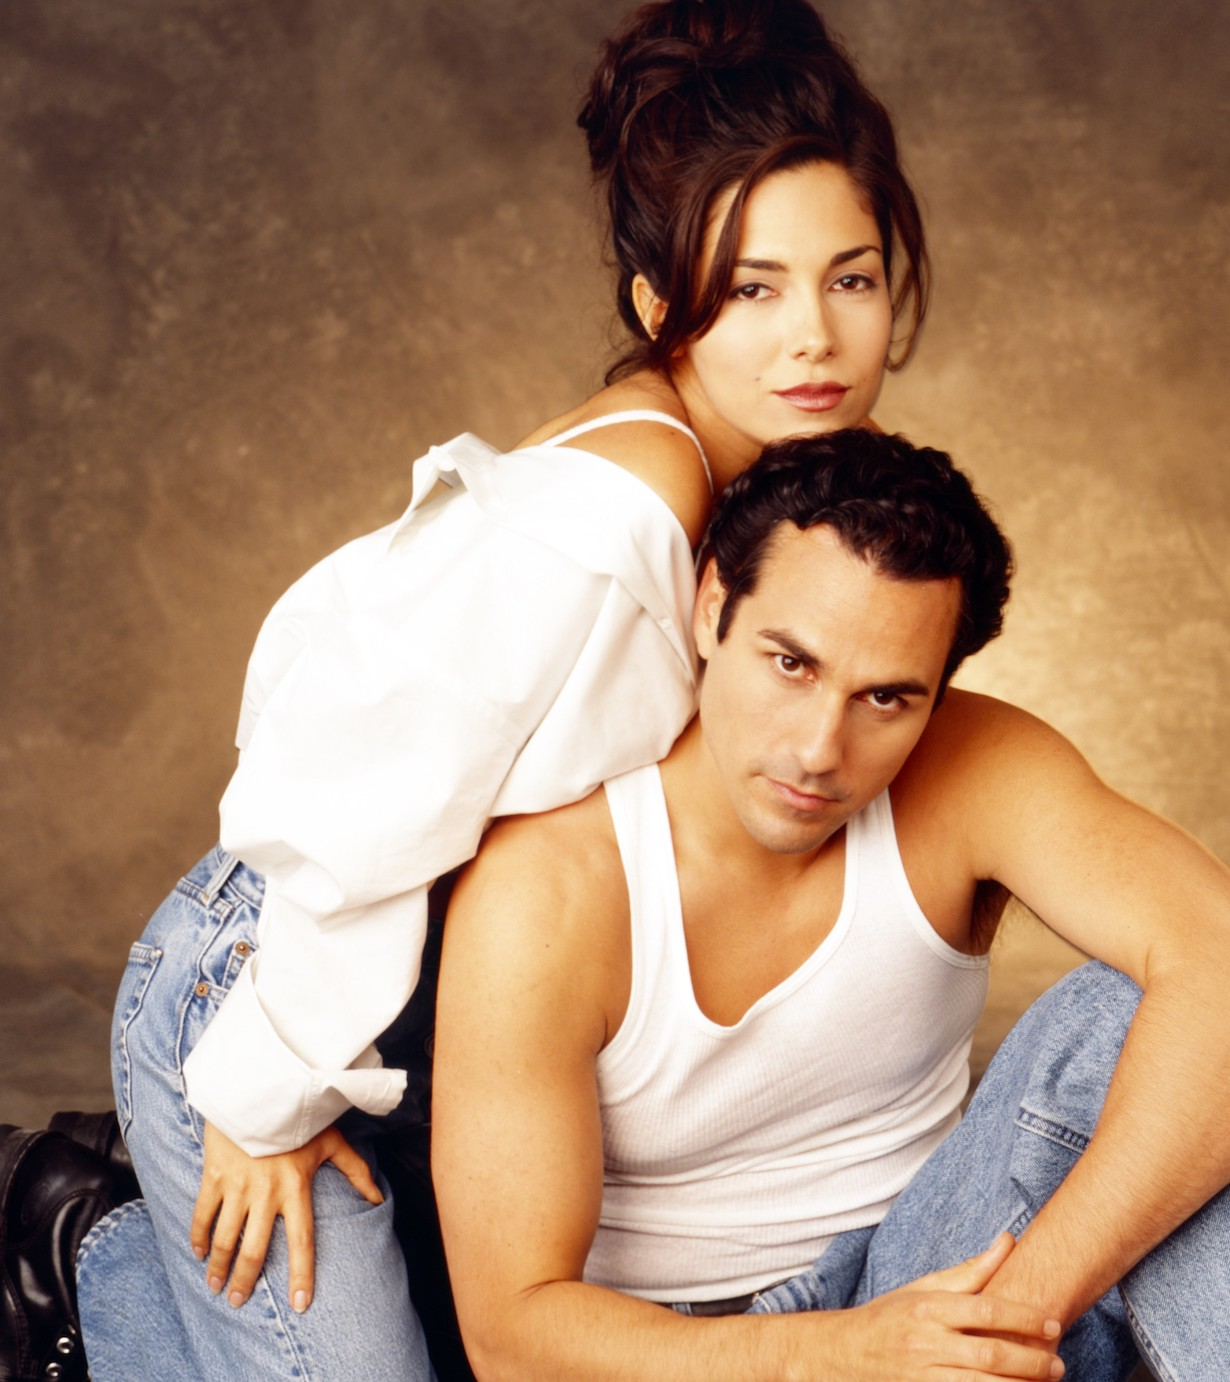 GENERAL HOSPITAL, from left: Vanessa Marcil, Maurice Benard, 1994, 1963- . ph: Craig Sjodin /© ABC /Courtesy Everett Collection